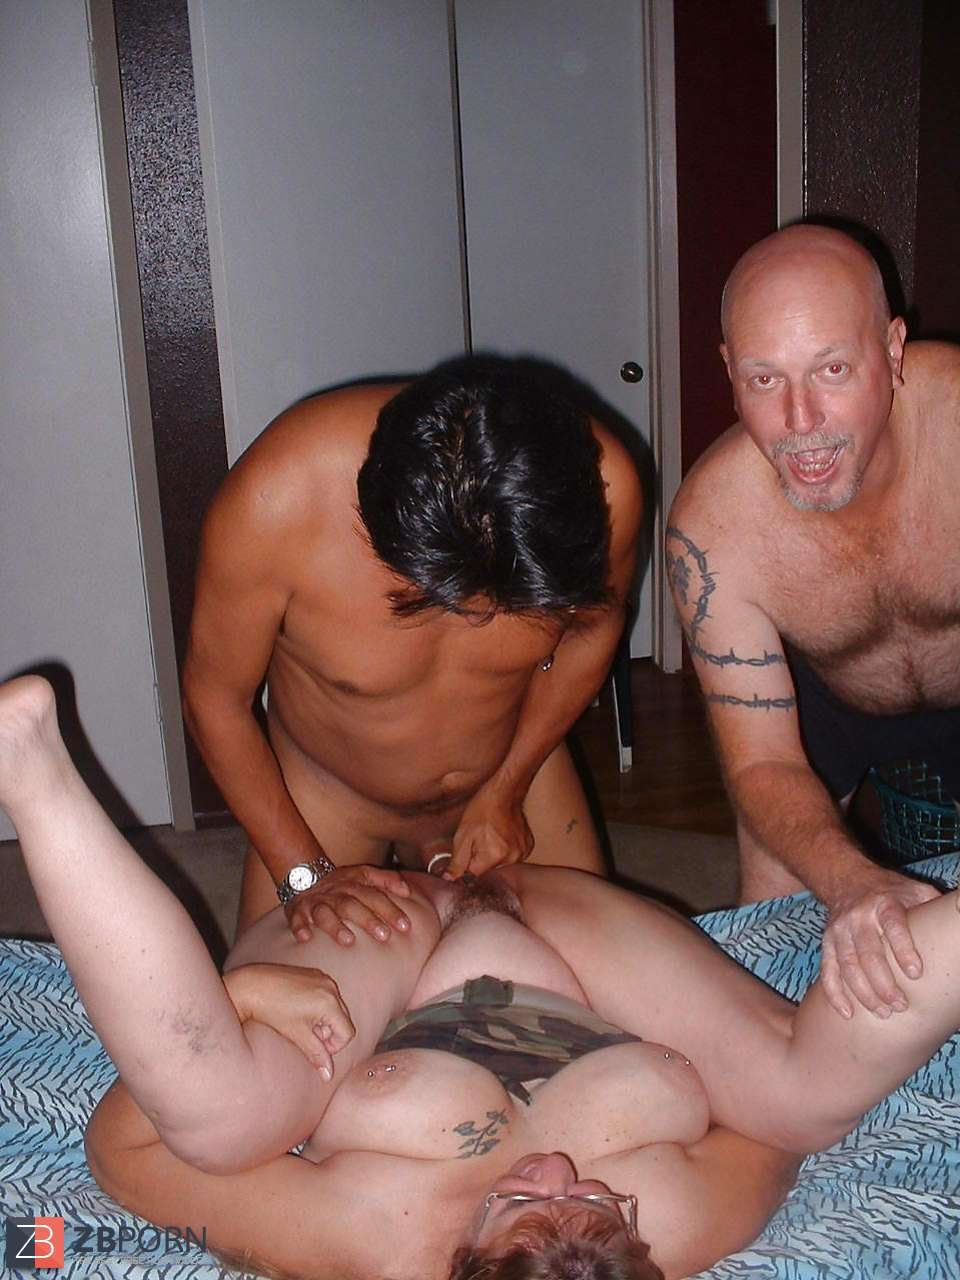 consider, erotic japanese handjob cock cumshot question interesting, too